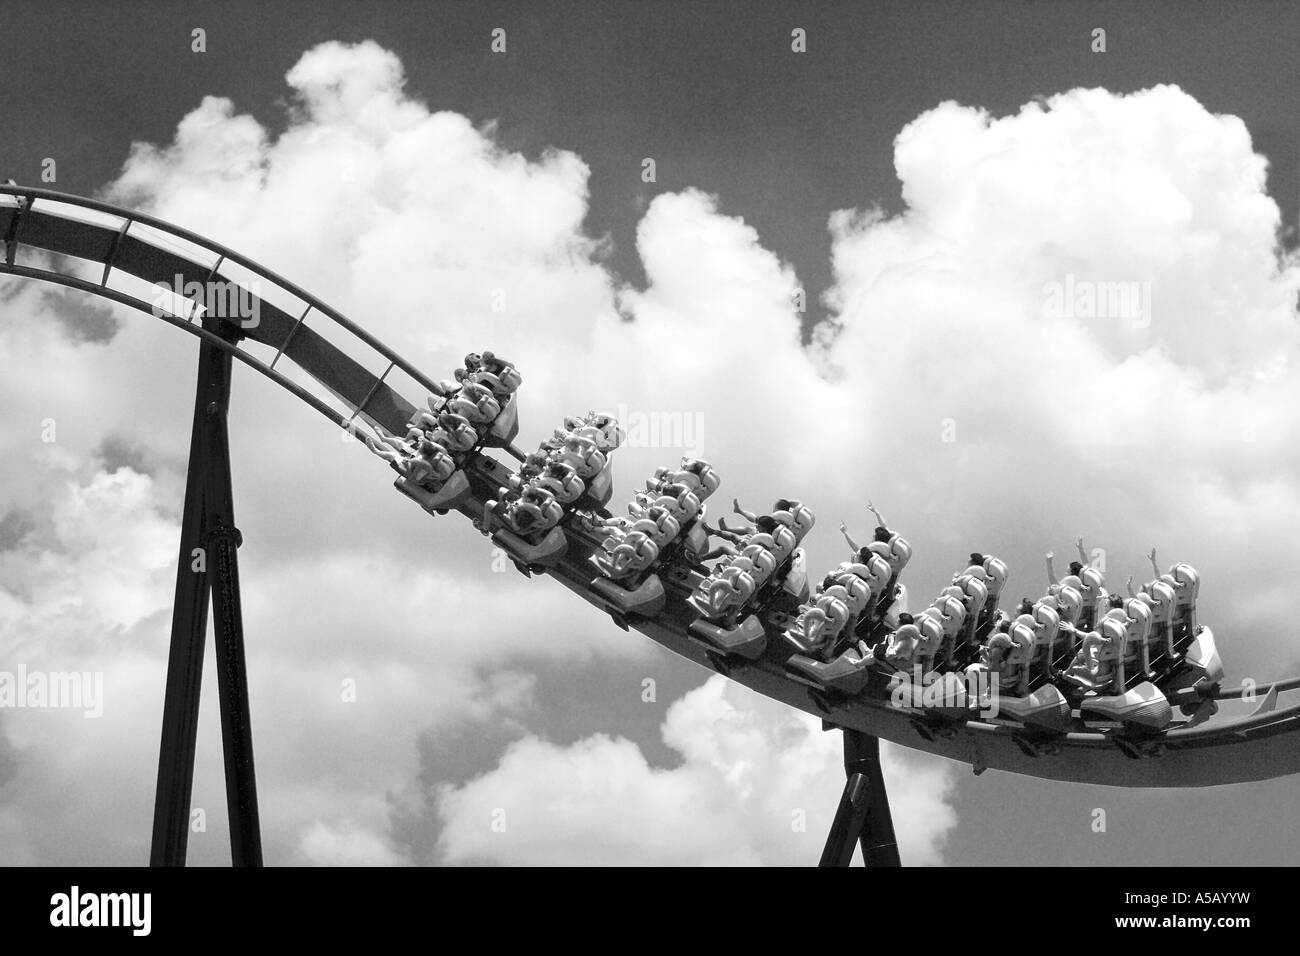 Powered Roller Coaster Ascent and Gravity Assist Return - Stock Image